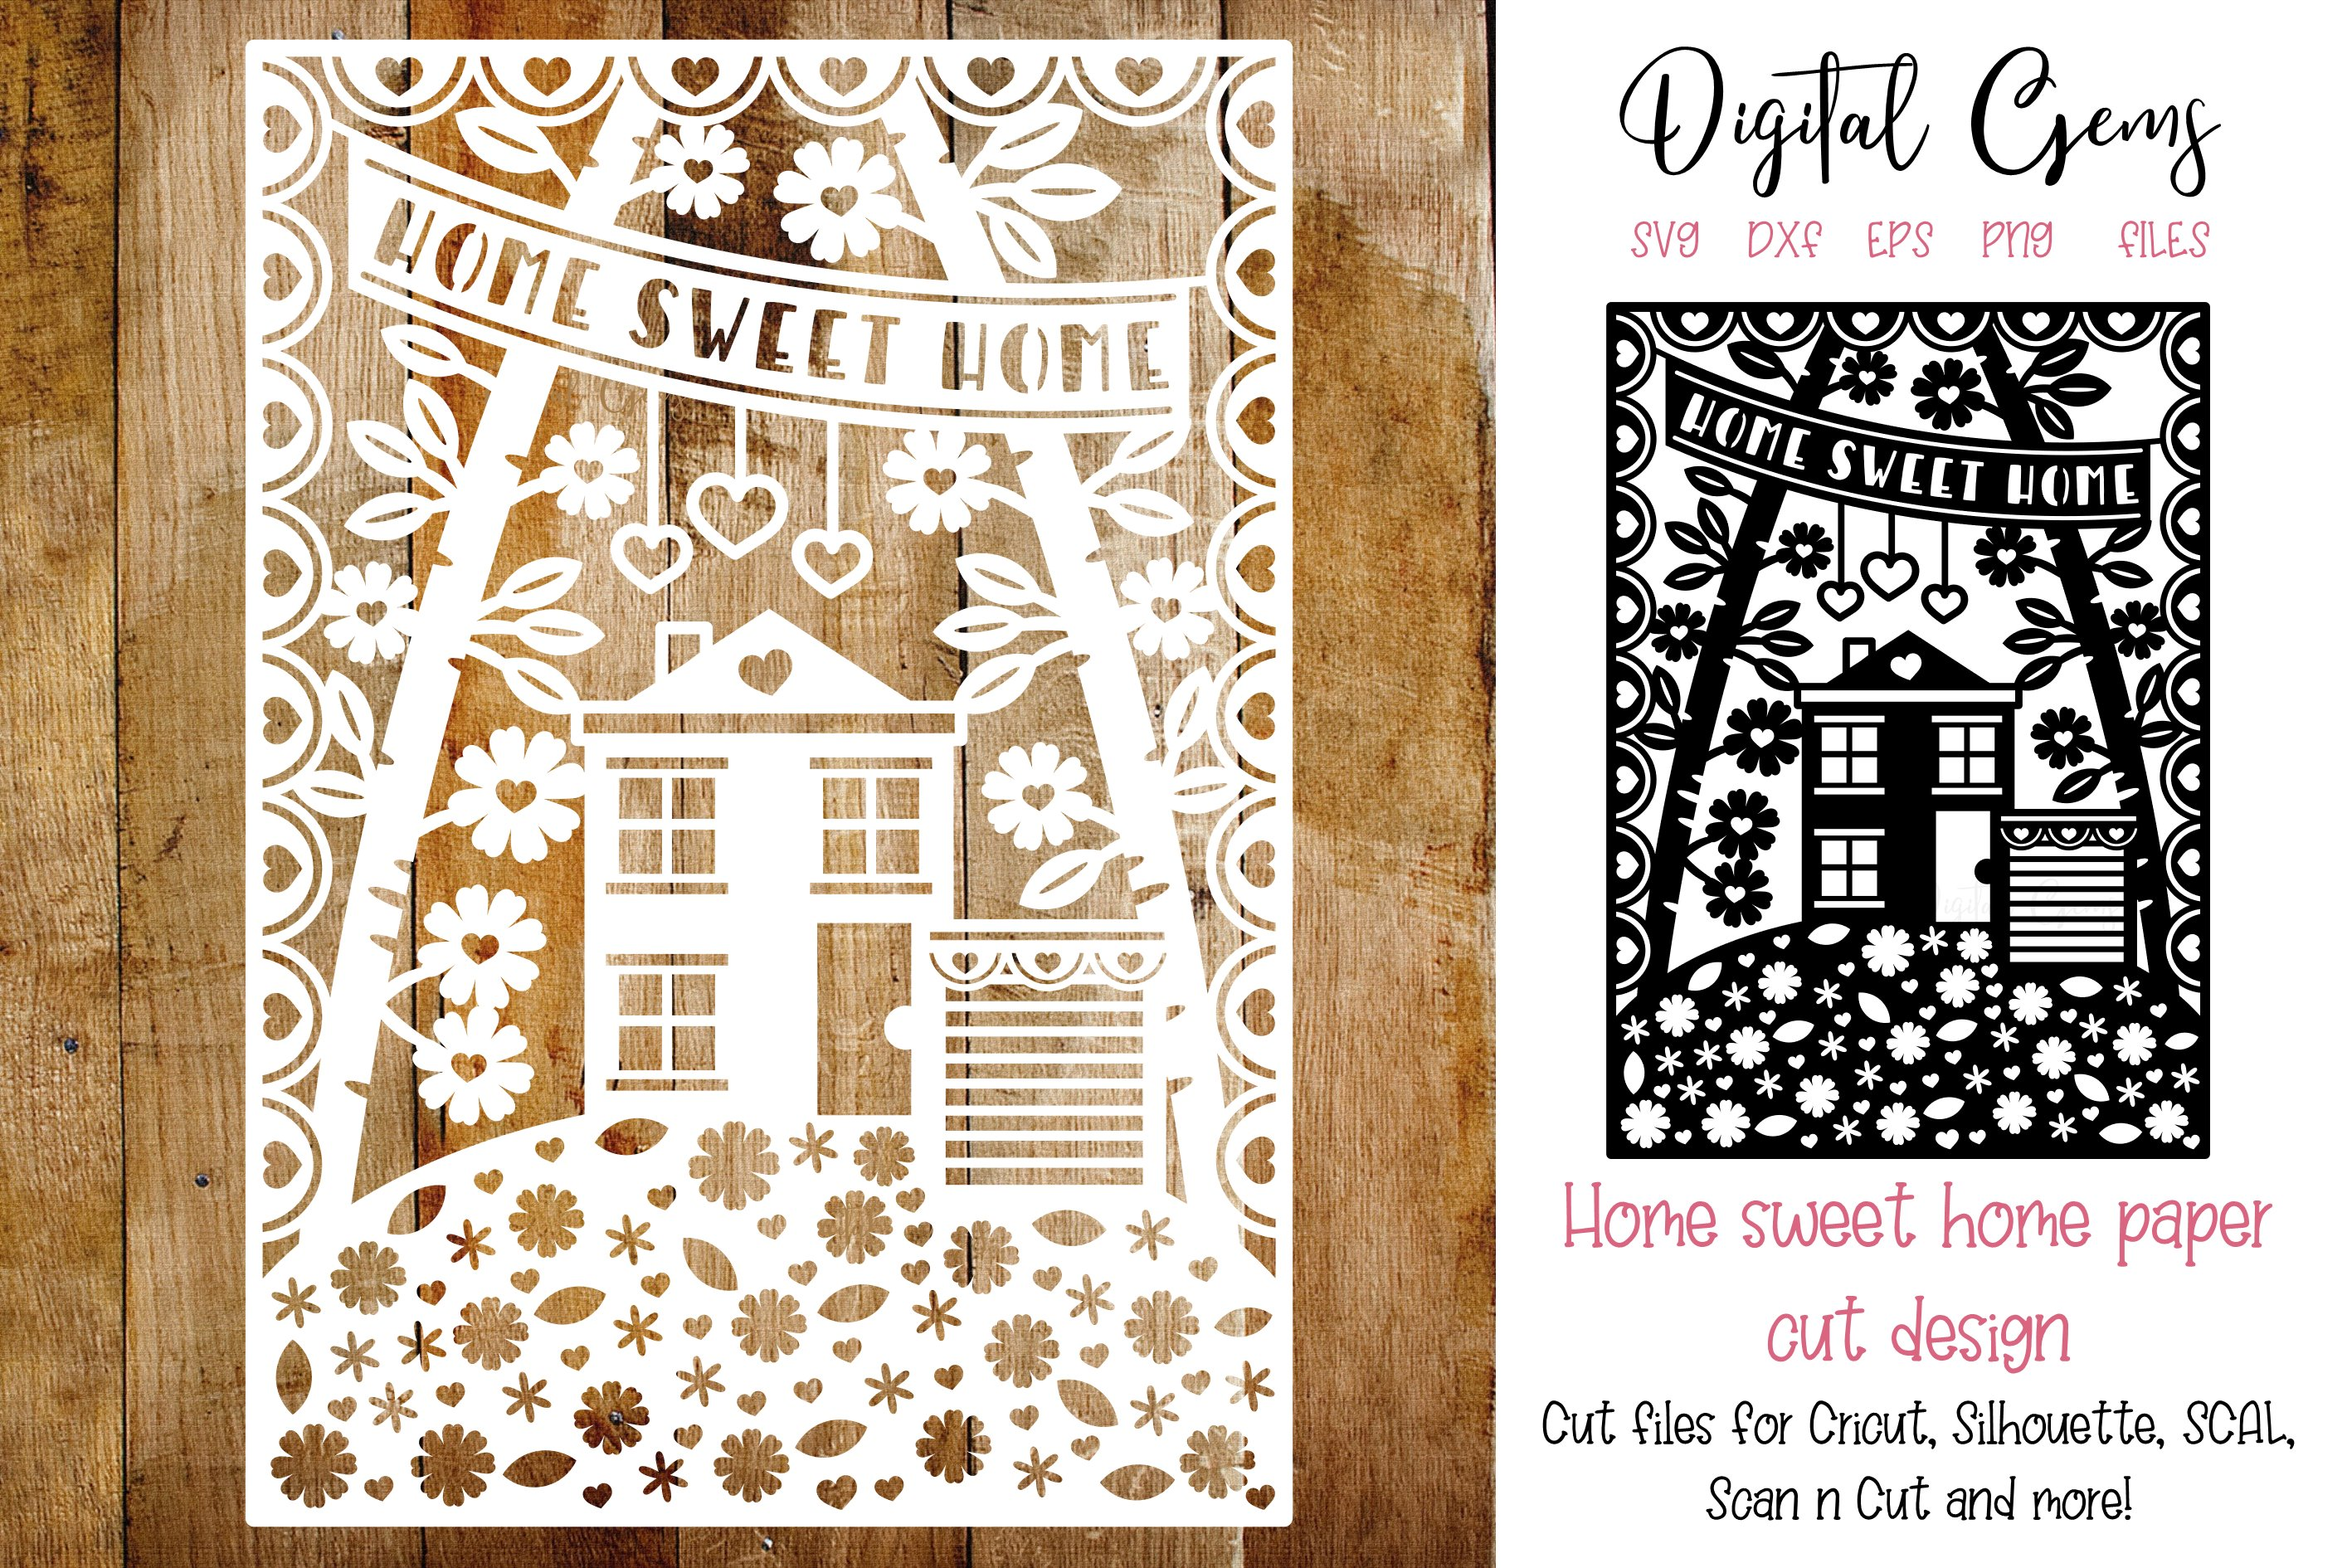 19+ Home Sweet Home Paper Cut Svg / Dxf / Eps Files SVG